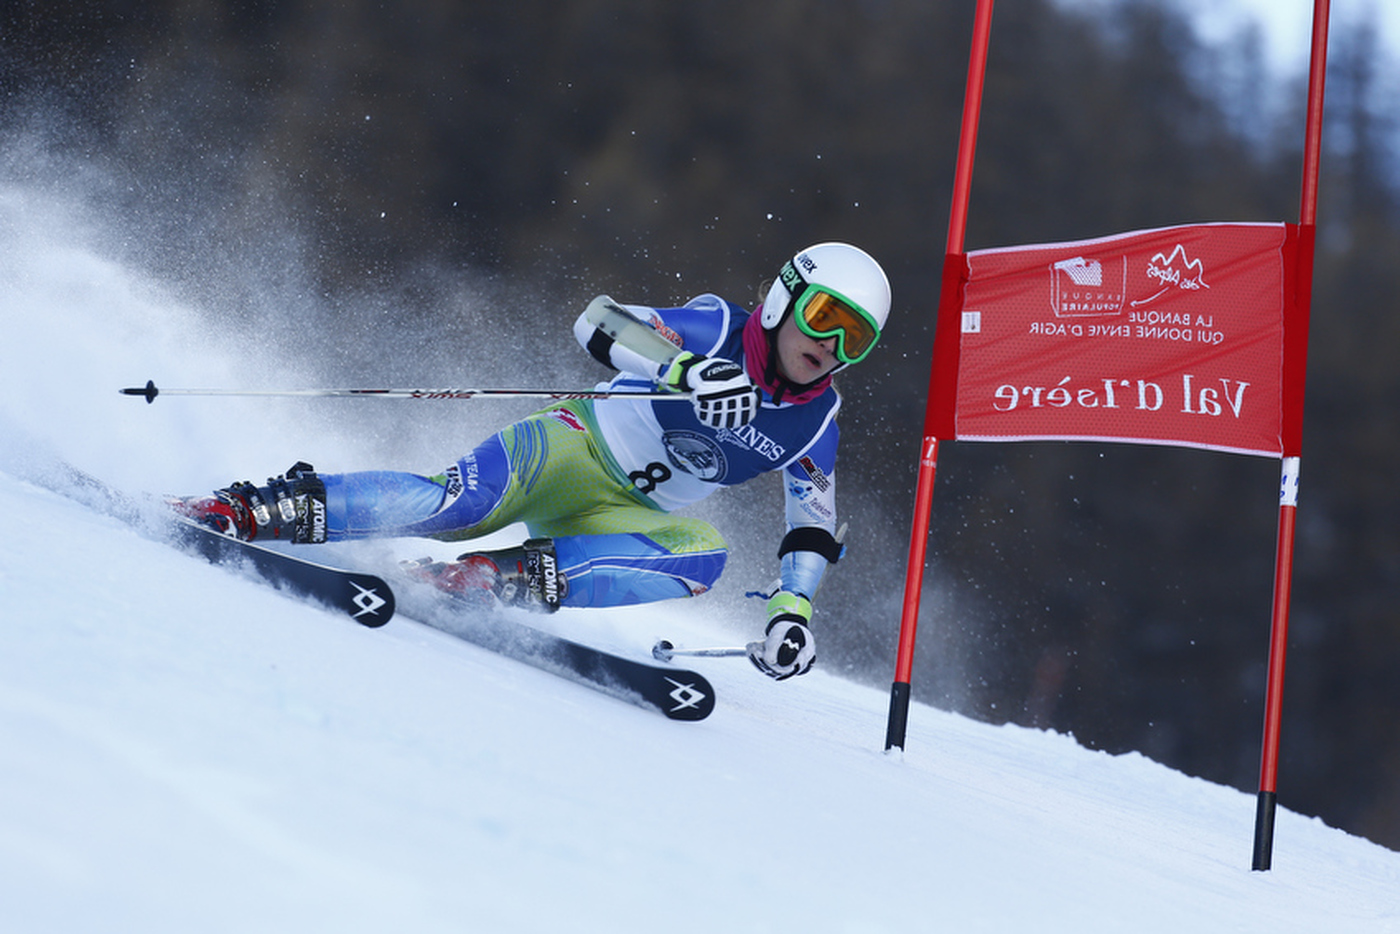 Longines Alpine Skiing Event: Second edition of the Longines Future Ski Champions – A successful 100% female competition in Val d'Isère 23